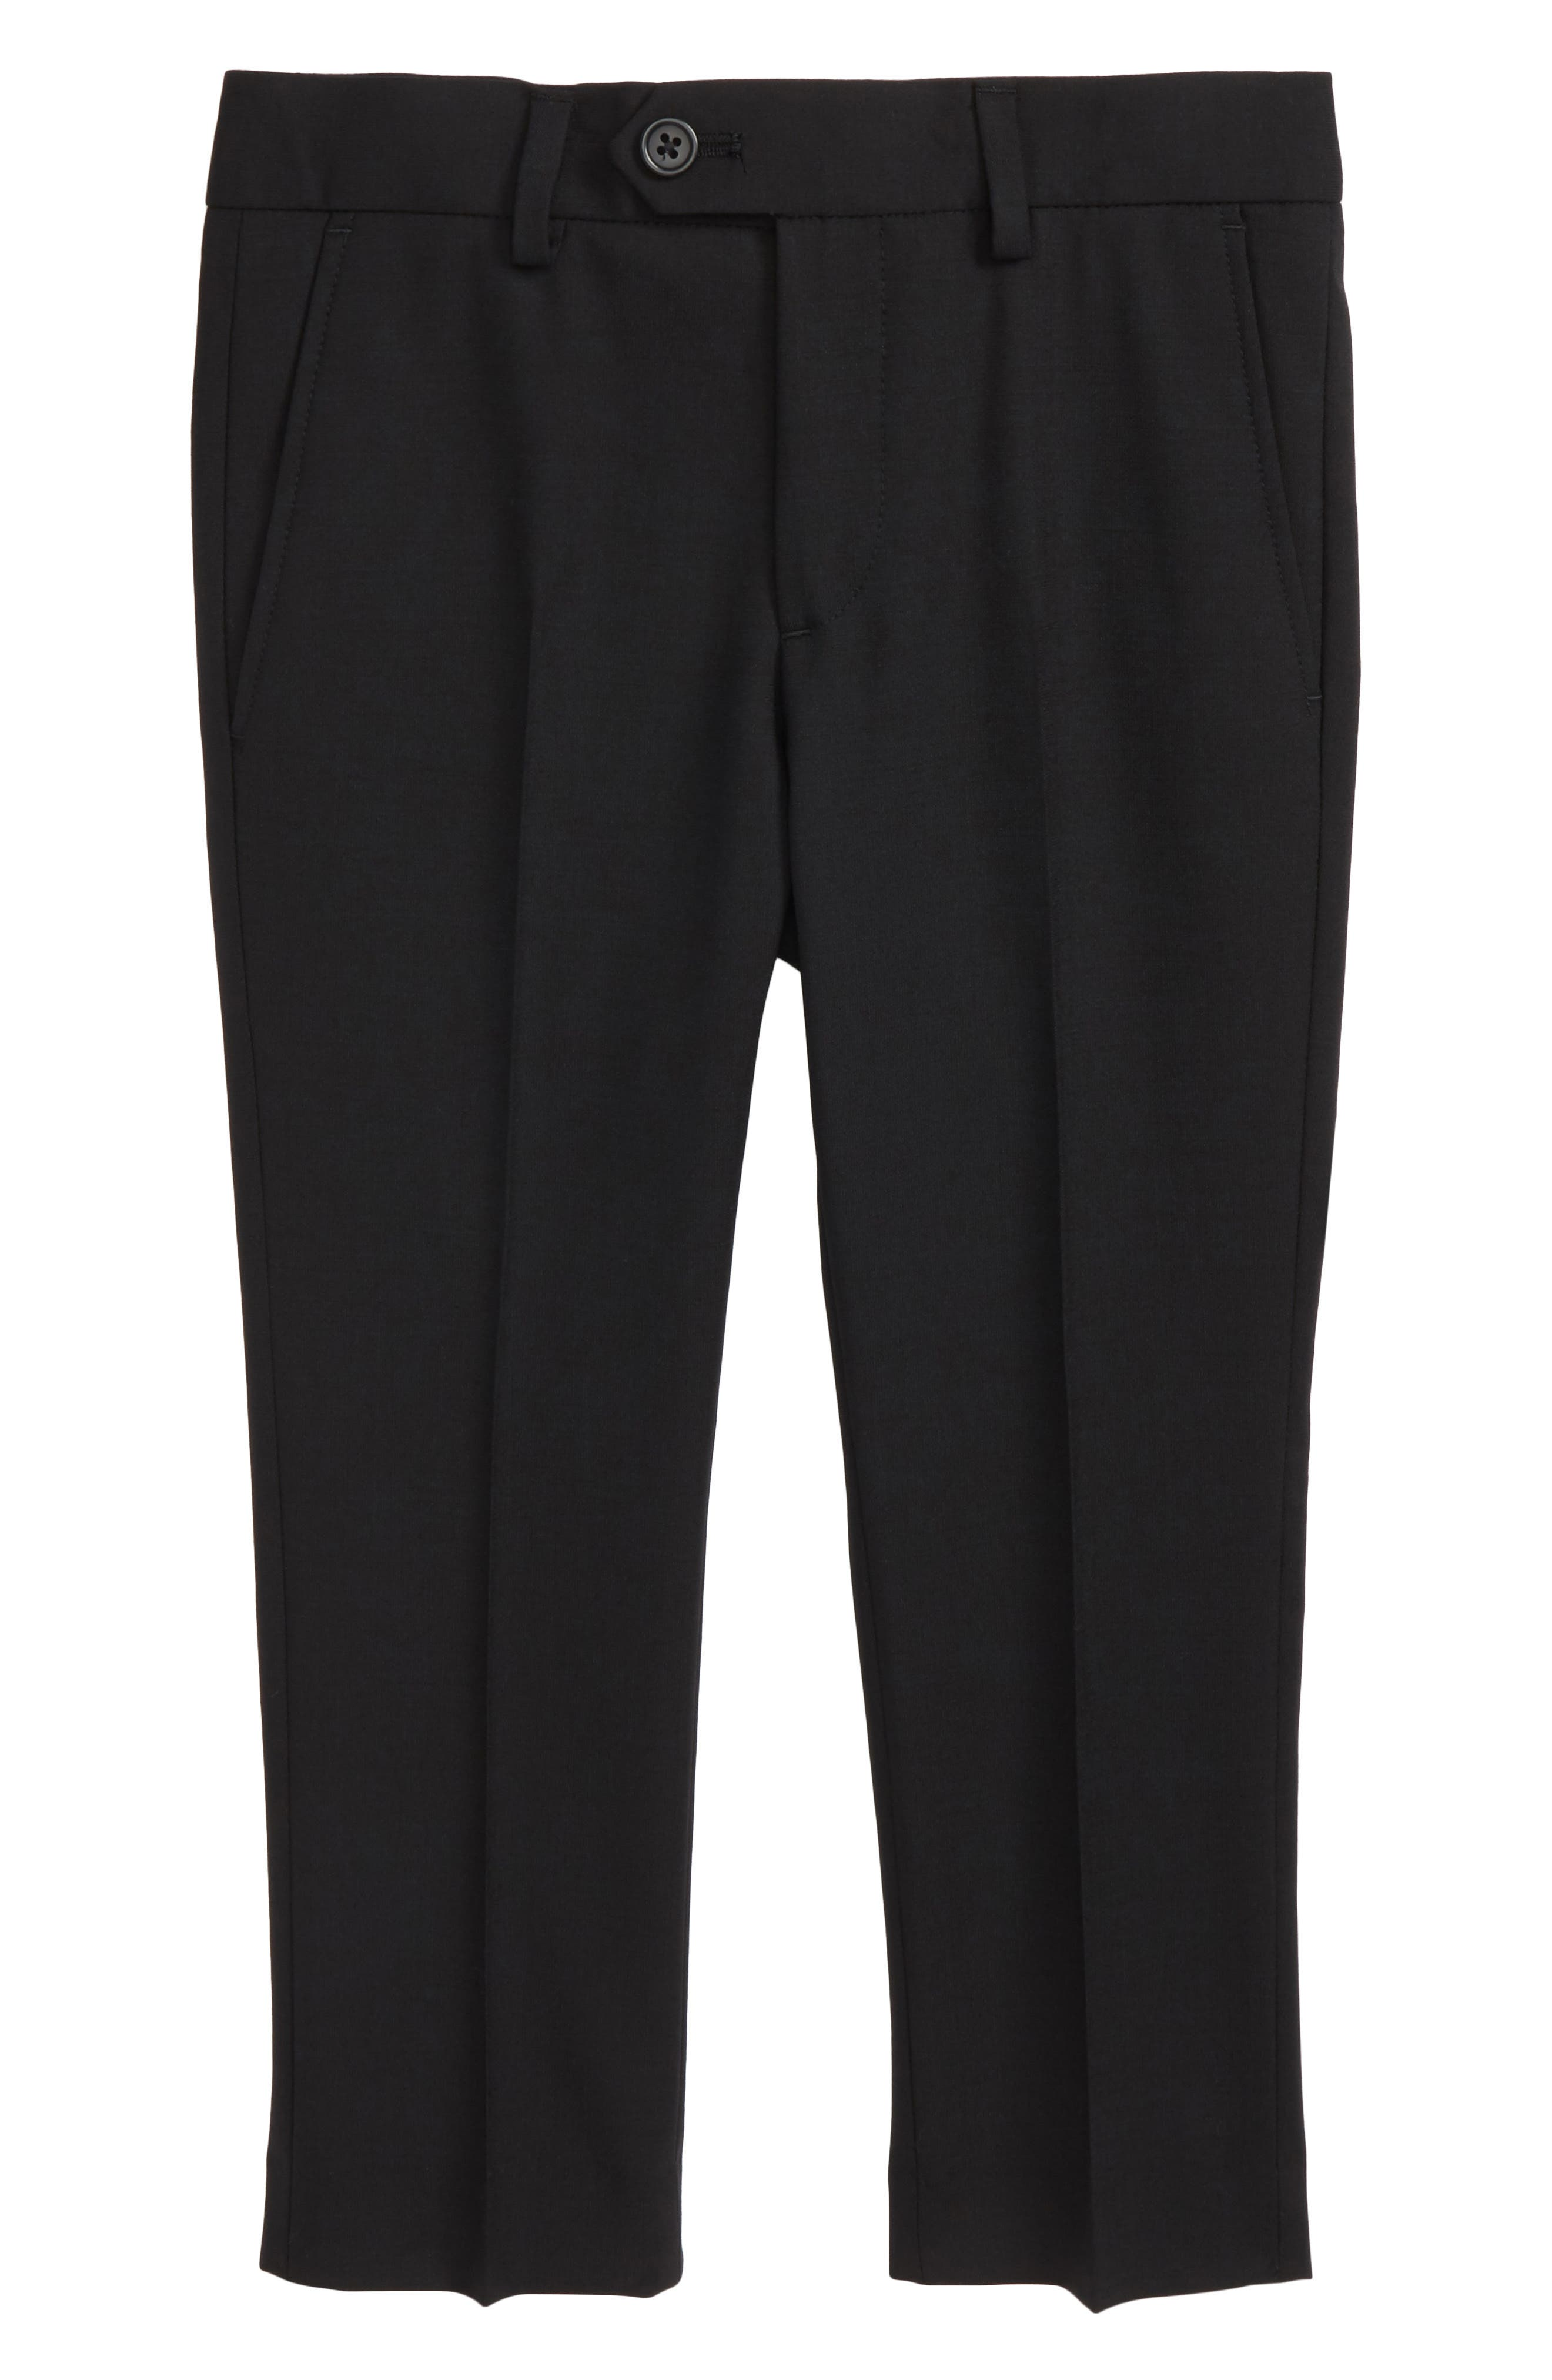 Solid Wool Blend Flat Front Trousers,                         Main,                         color, Black